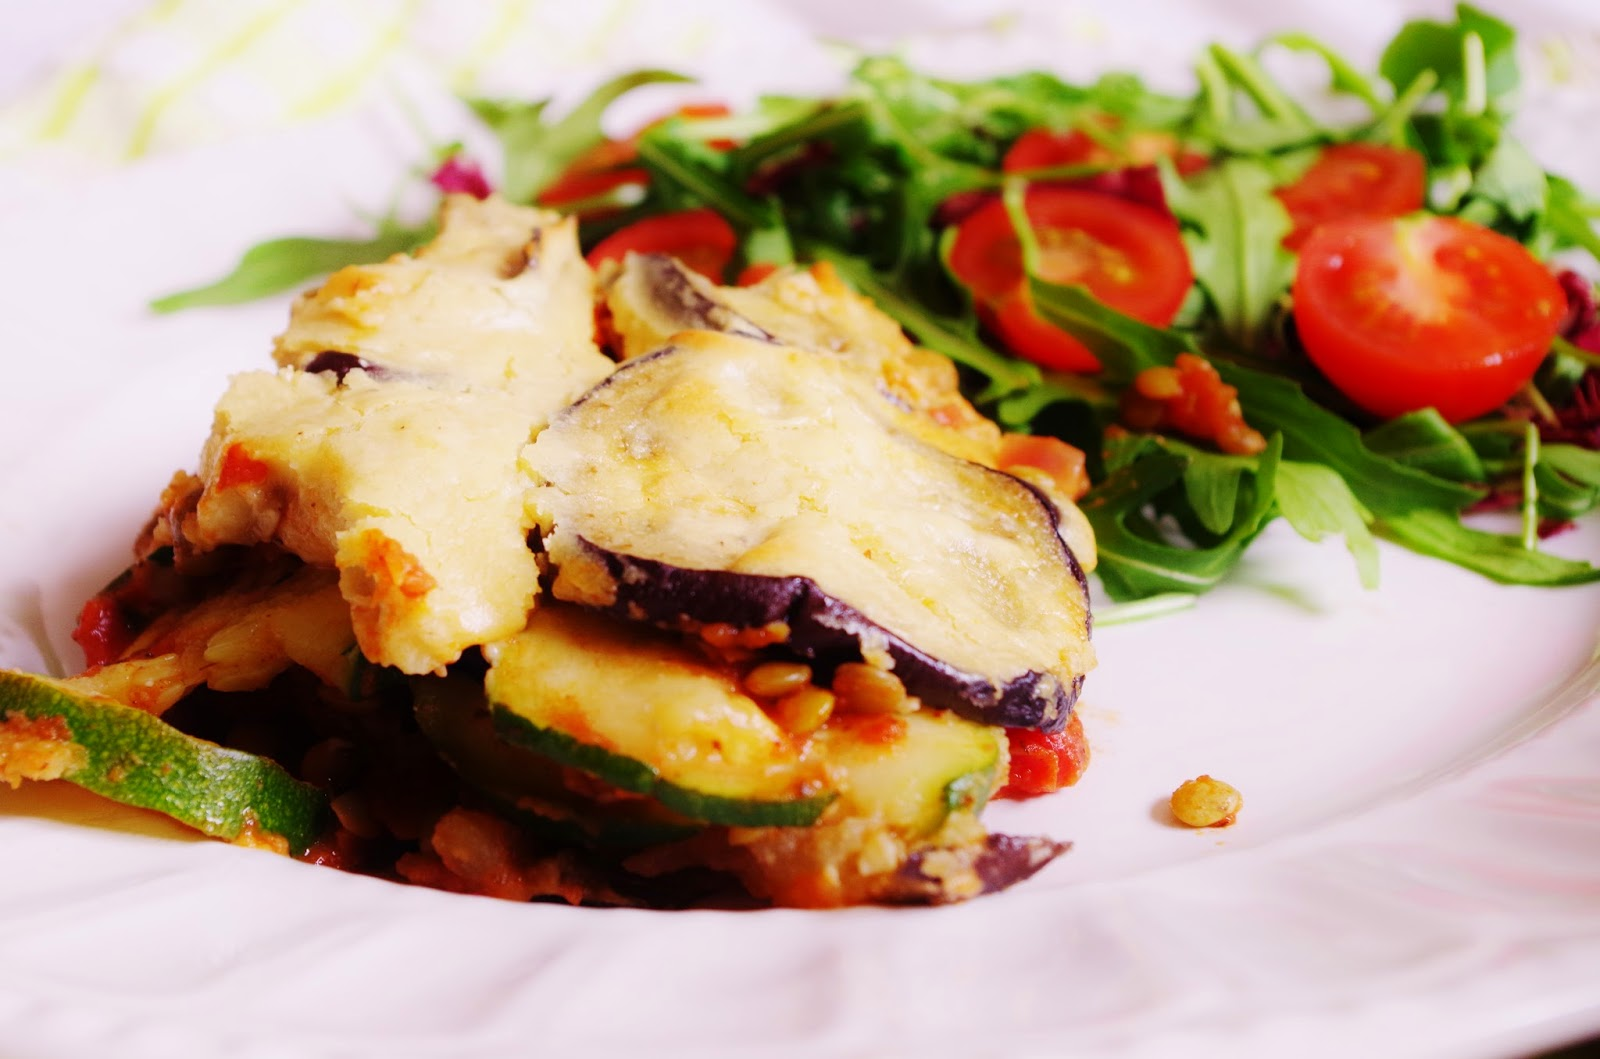 Vegan Moussaka with Cashew Béchamel |Euphoric Vegan